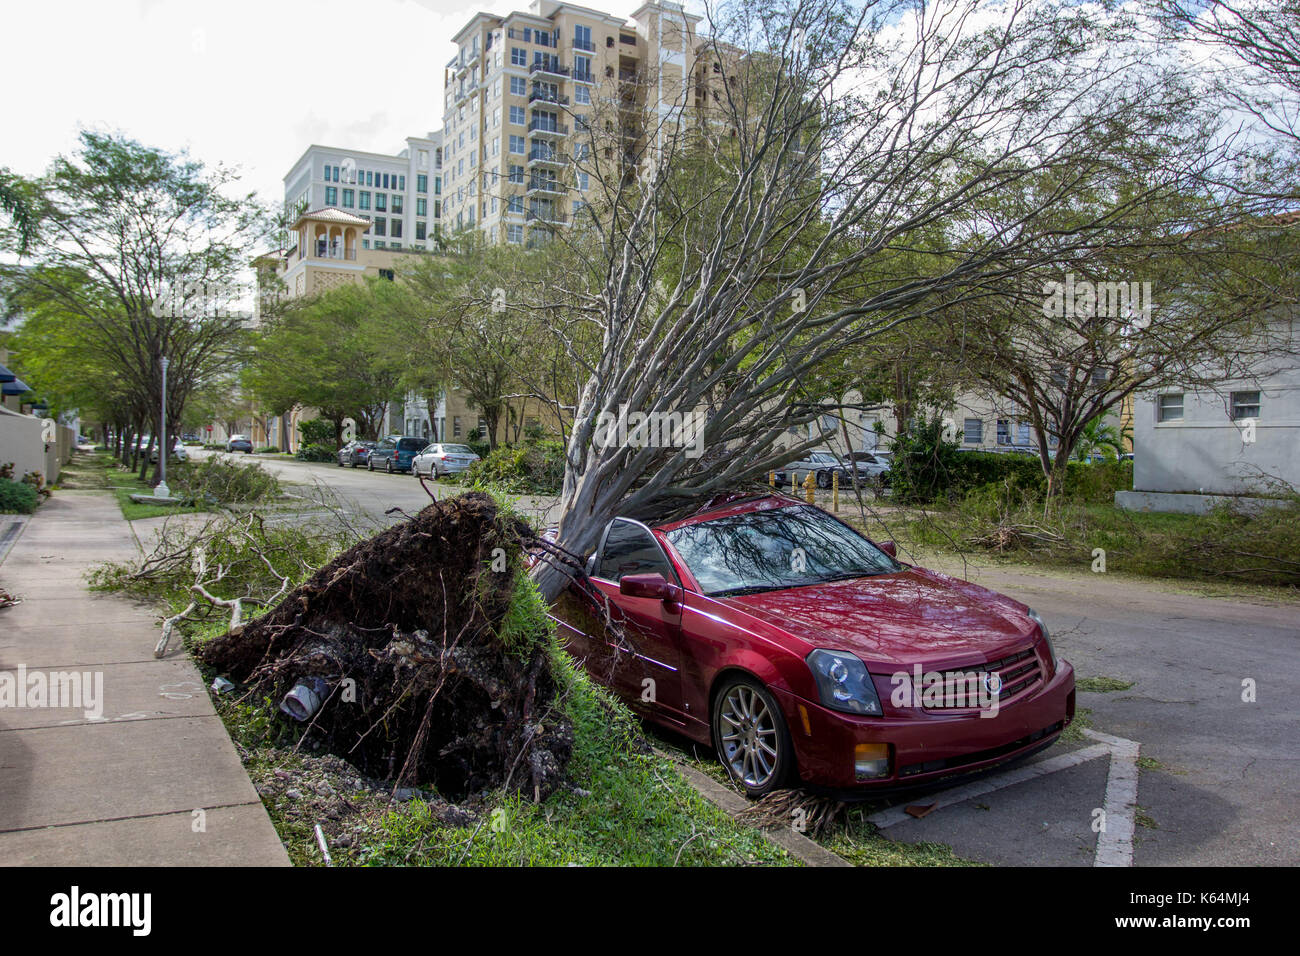 Miami, Florida, USA. 11th Sep, 2017. A car is crushed under an uprooted tree following Hurricane Irma in Miami, Stock Photo